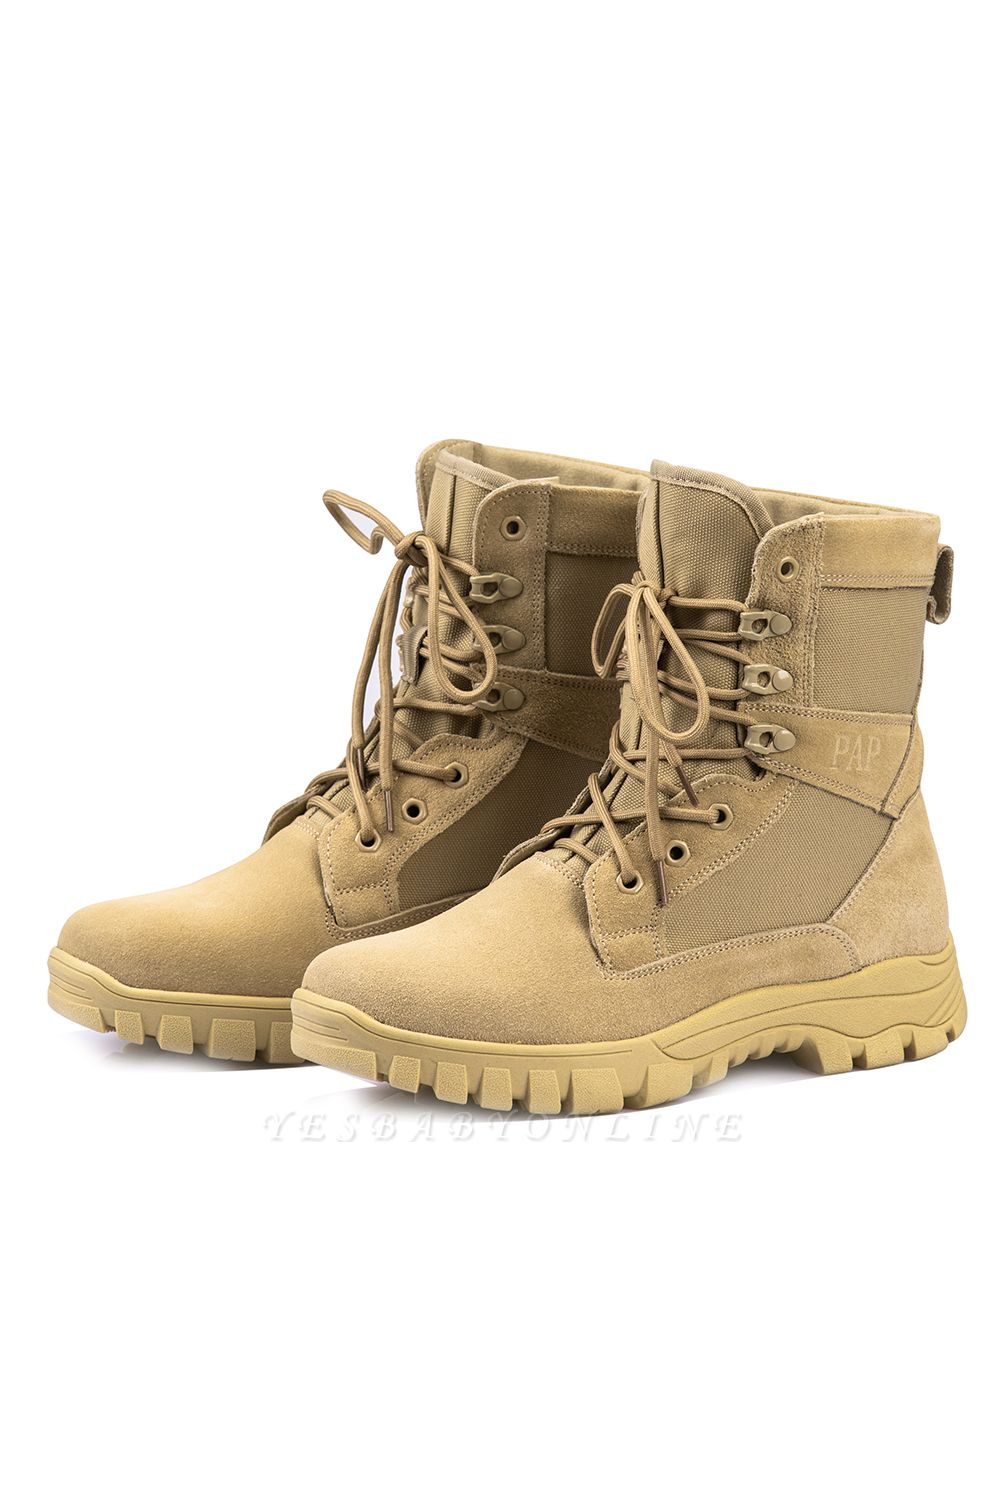 Outdoor Combat Ankle Boots Water Resistant Lightweight Mid Hiking Boots On Sale